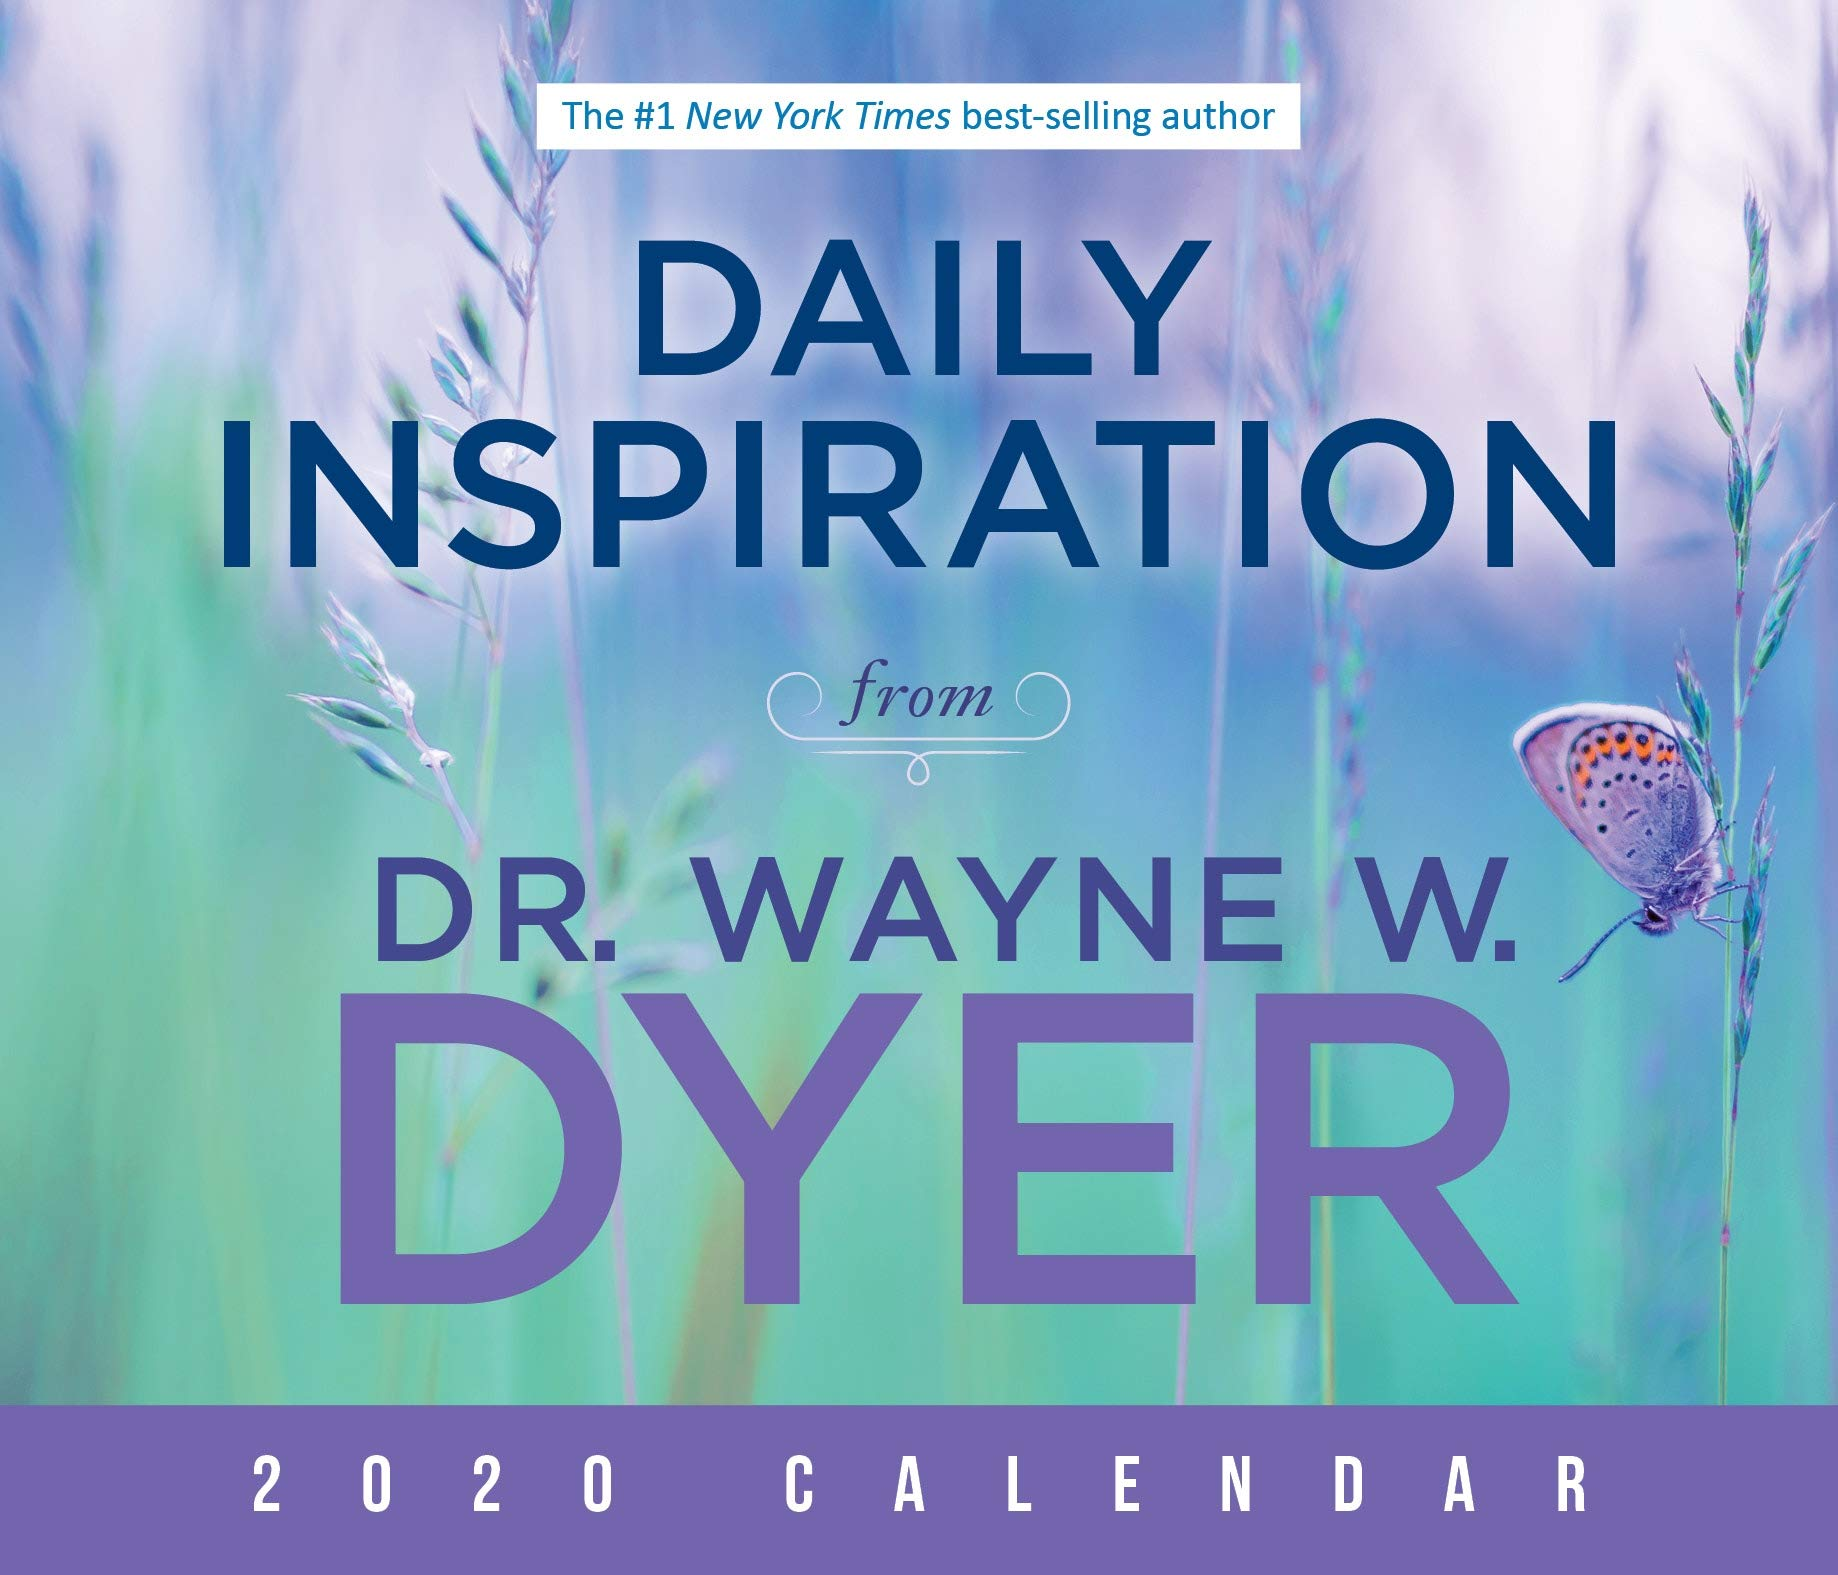 Nyt Best Sellers 2020 Daily Inspiration from Dr. Wayne W. Dyer 2020 Calendar: Wayne W